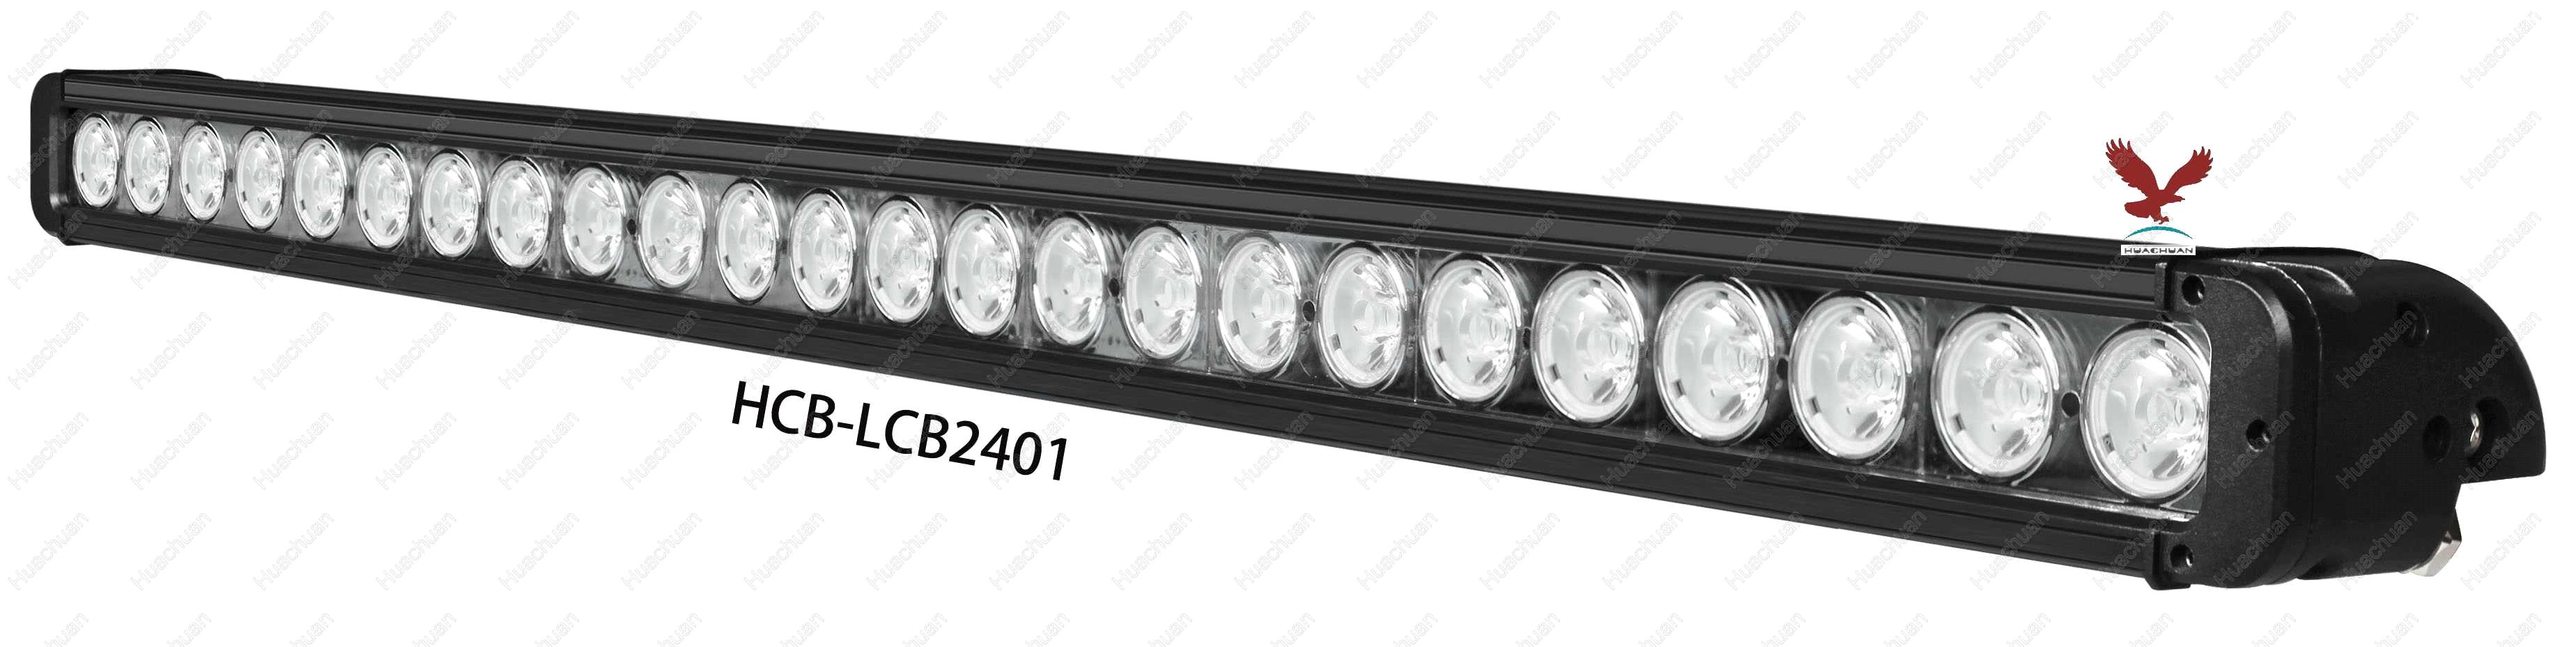 240W CREE LED Work Light Bar for Truck Offroad (HCB-LCB2401)